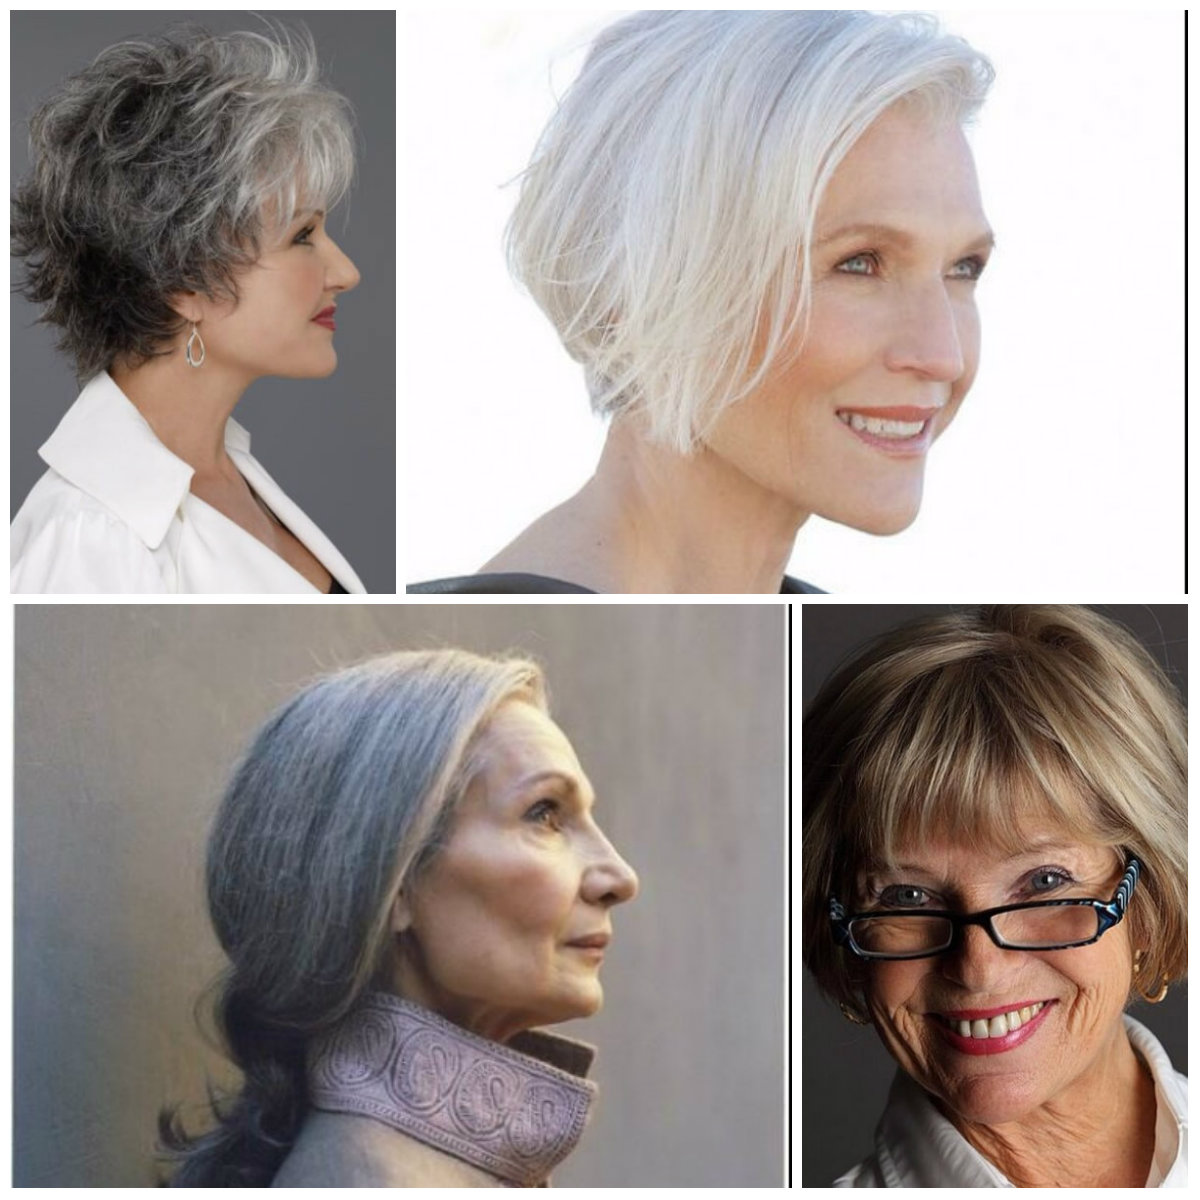 Hairstyle ideas for women over 50